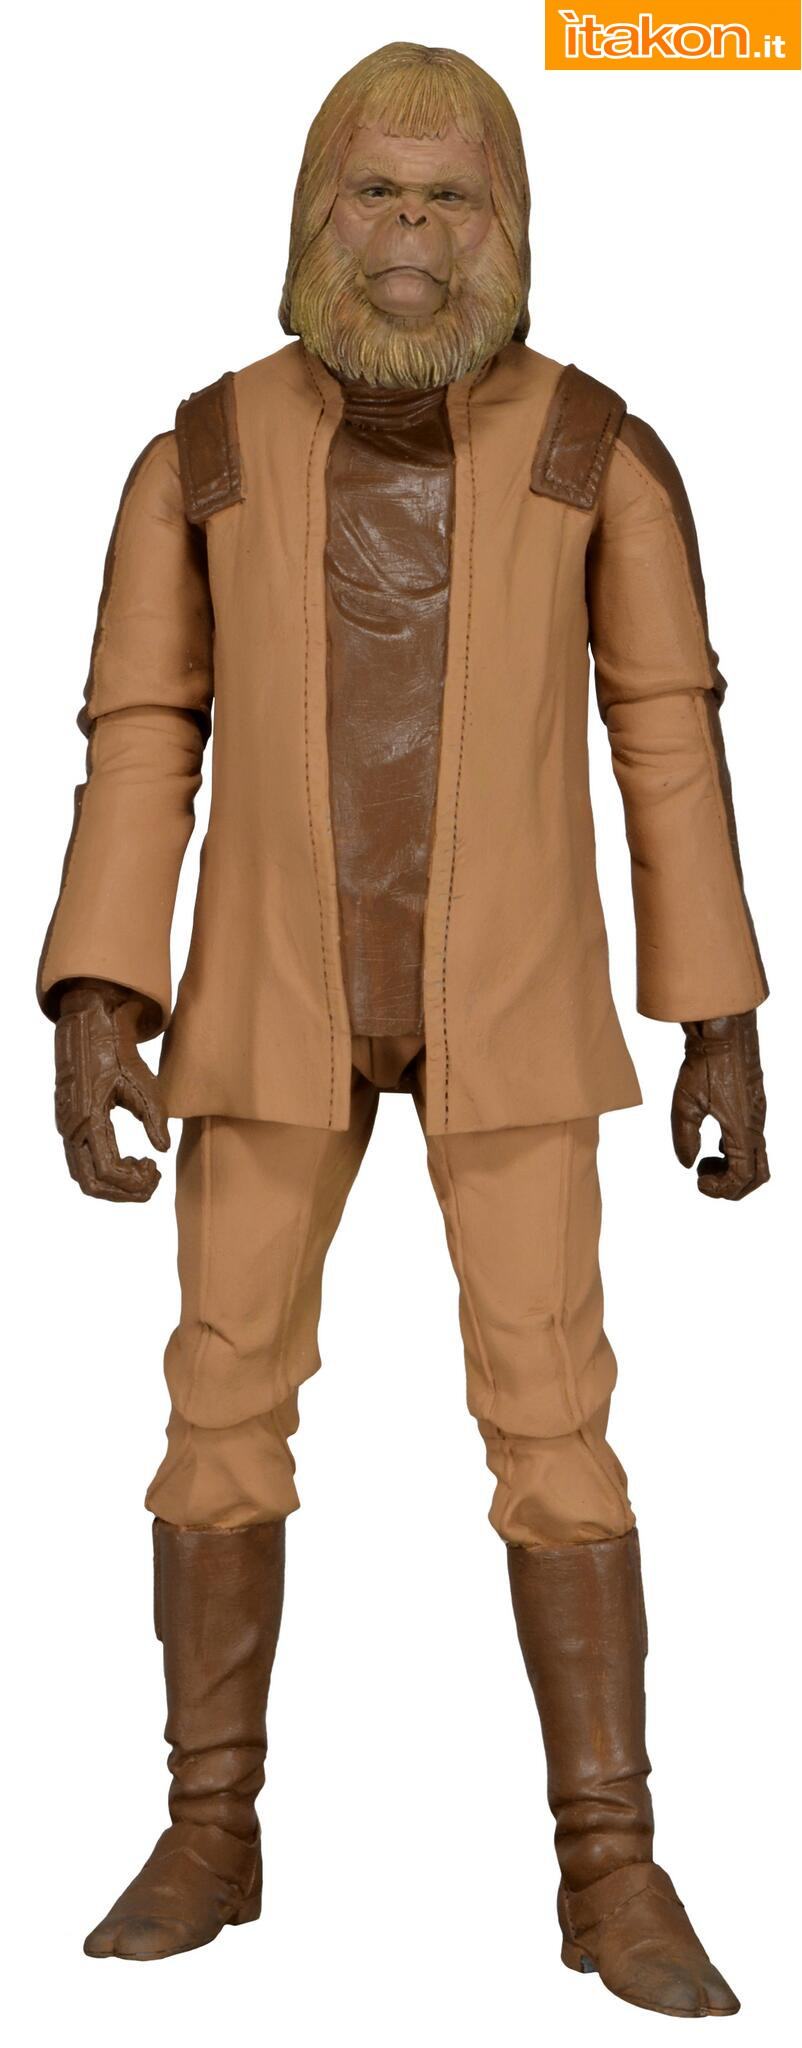 Link a Planet-of-the-Apes-Dr-Zaius